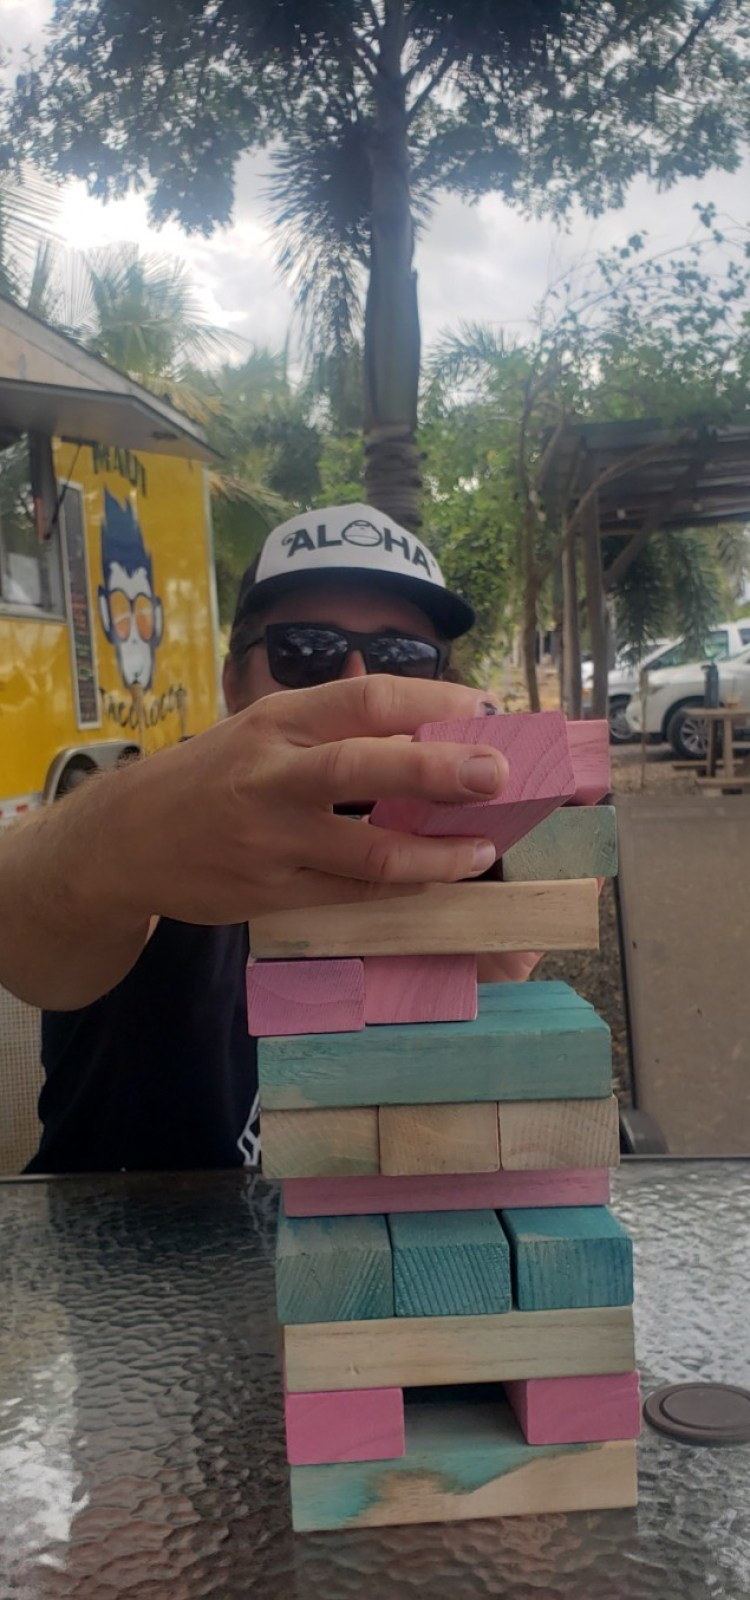 Man with sunglasses and Aloha hat playing Jenga at a food truck in Maui